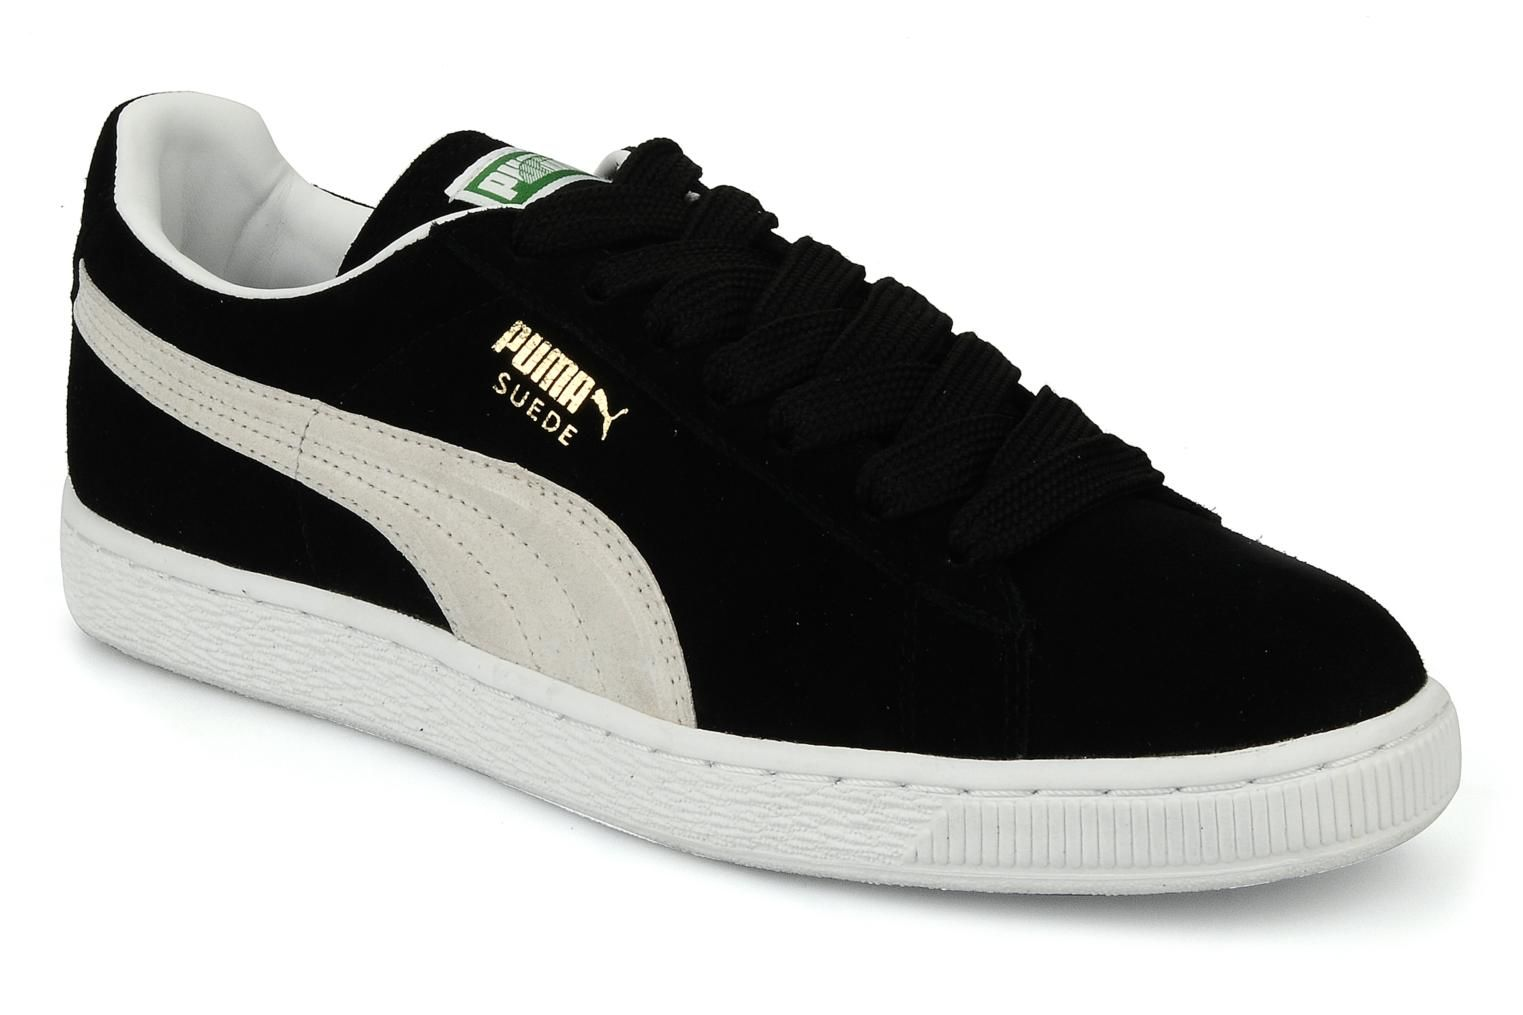 Puma Suede Classic + Trainers in Black at Sarenza.co.uk